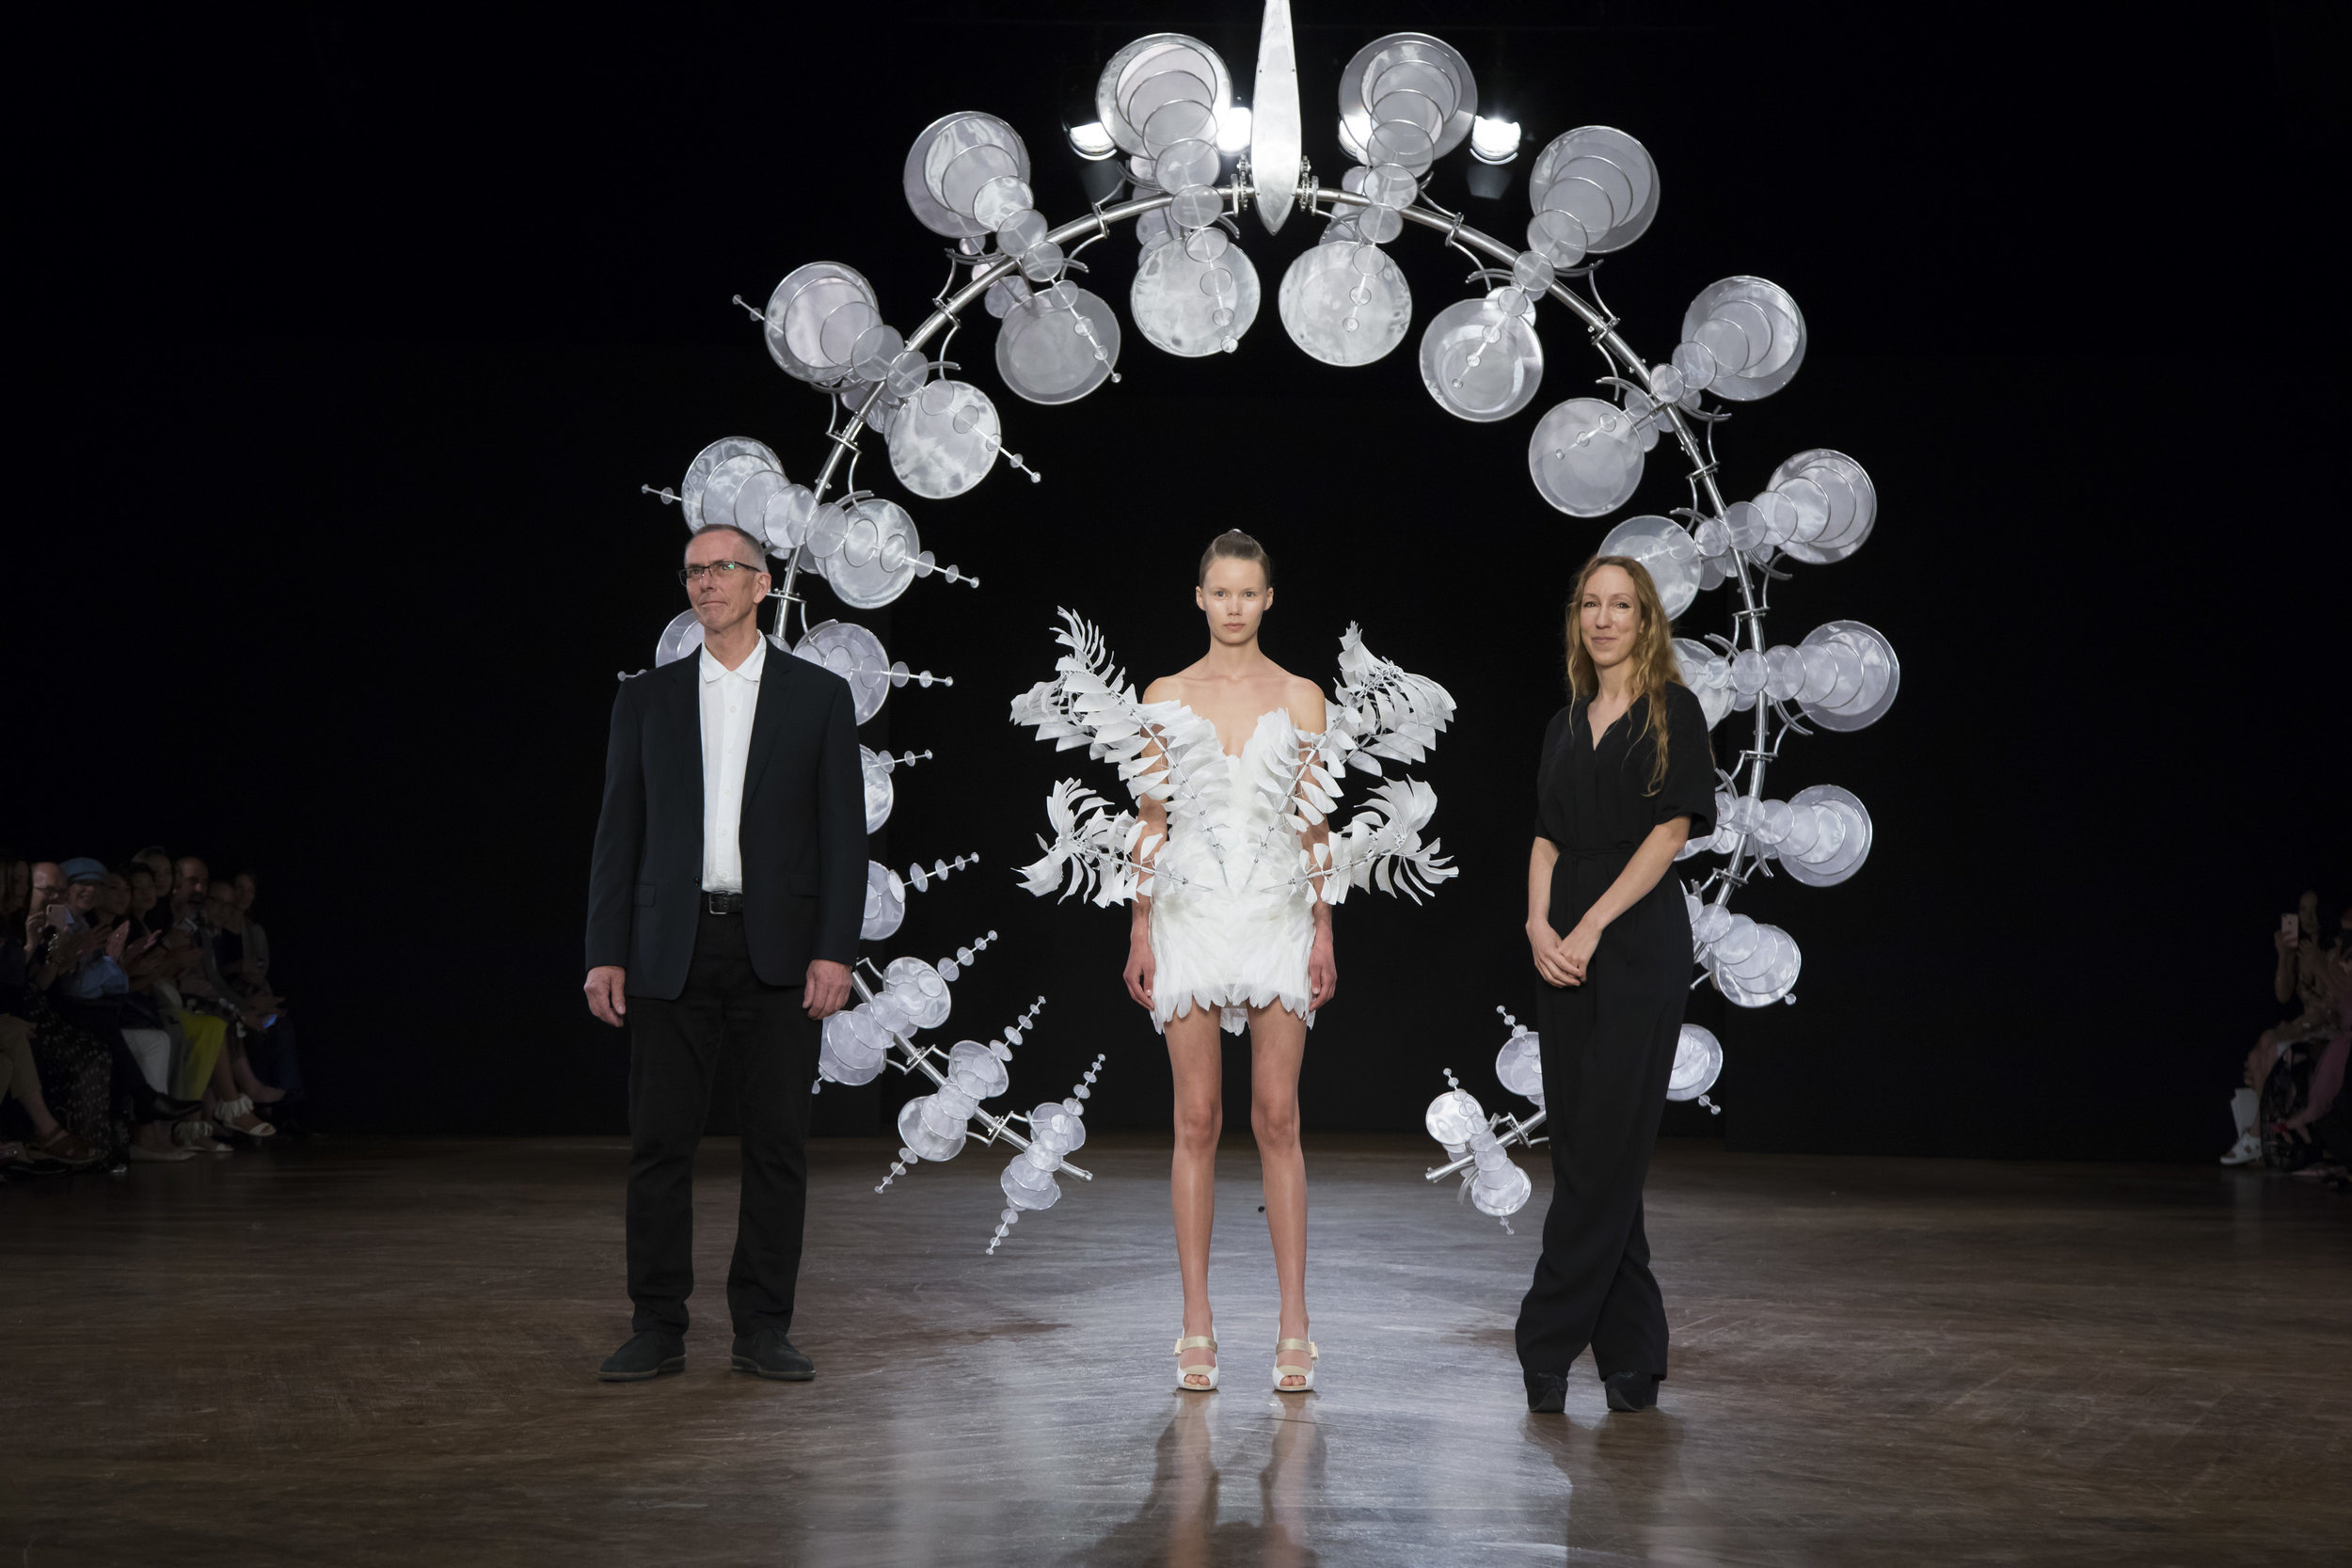 Anthony Howe collaborates with iris van herpen for her fall 2019 haute couture fashion show in paris -